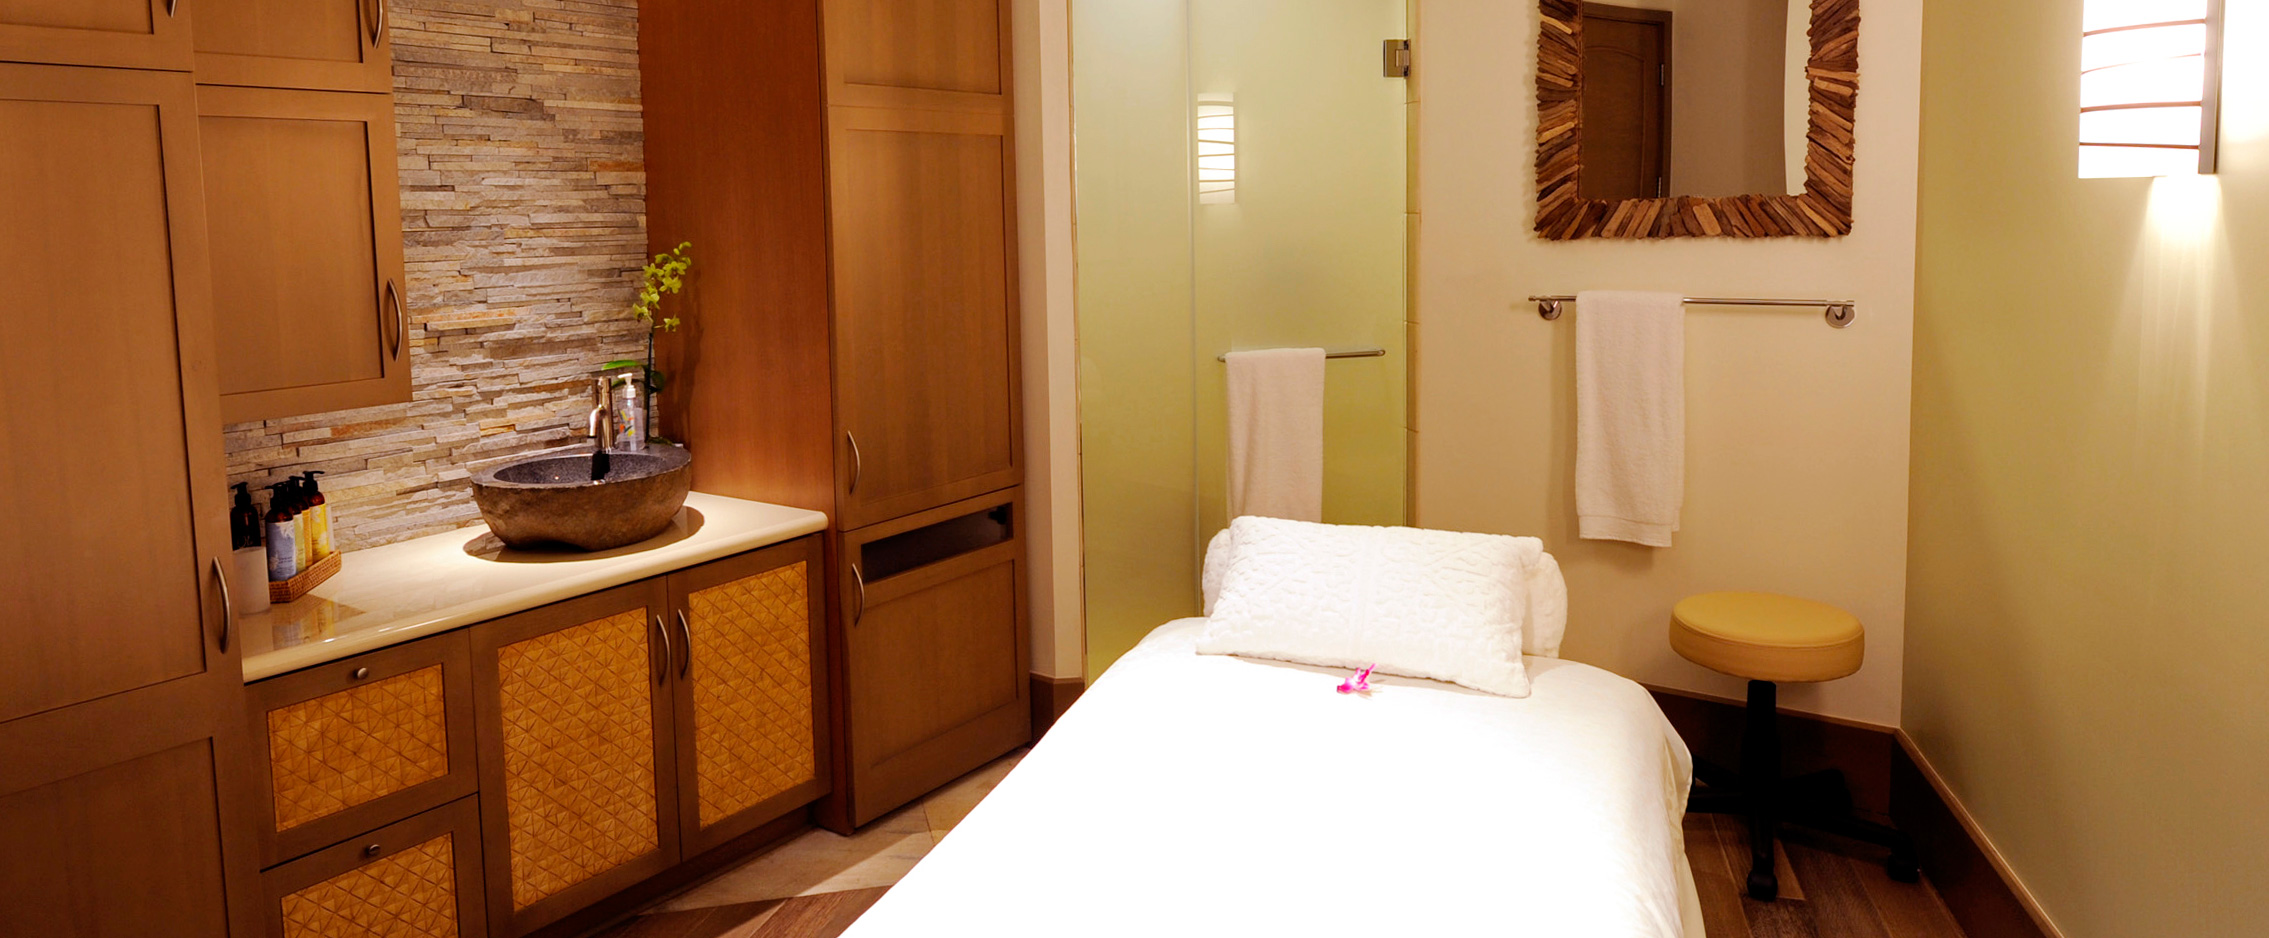 Superieur ... A Massage Table In A Room With Natural Wood Cabinets, A Stone Bowl Sink  And ...